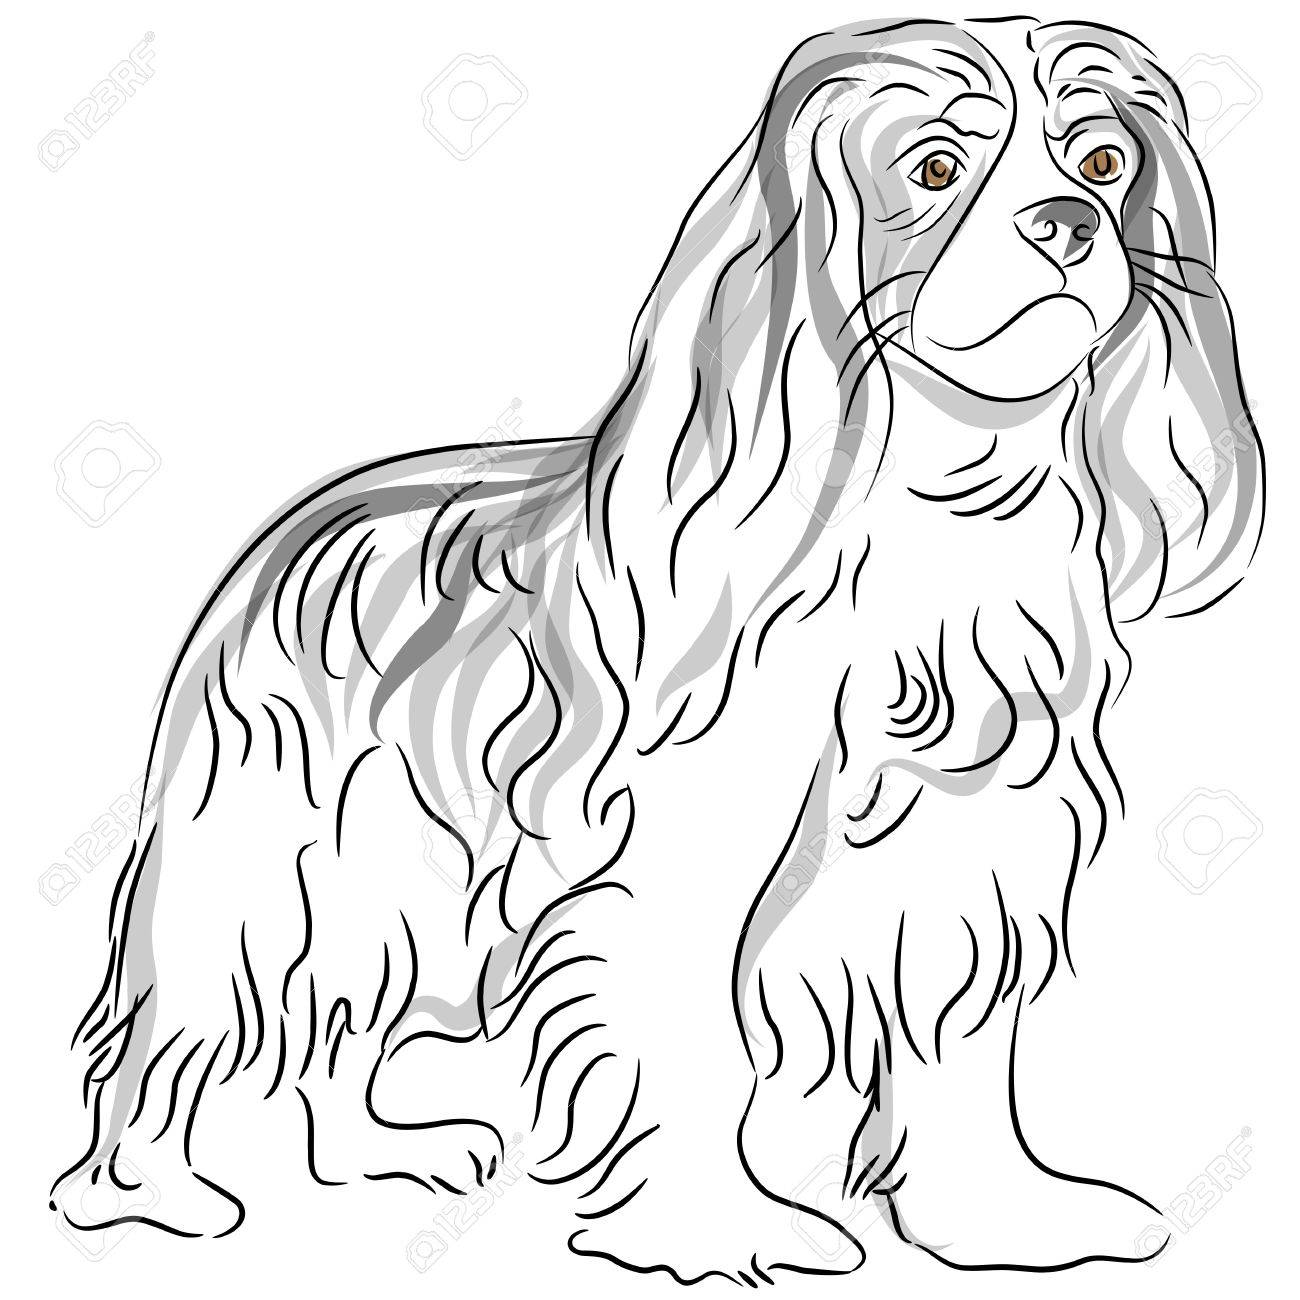 King Line Drawing an Image of a Cavalier King